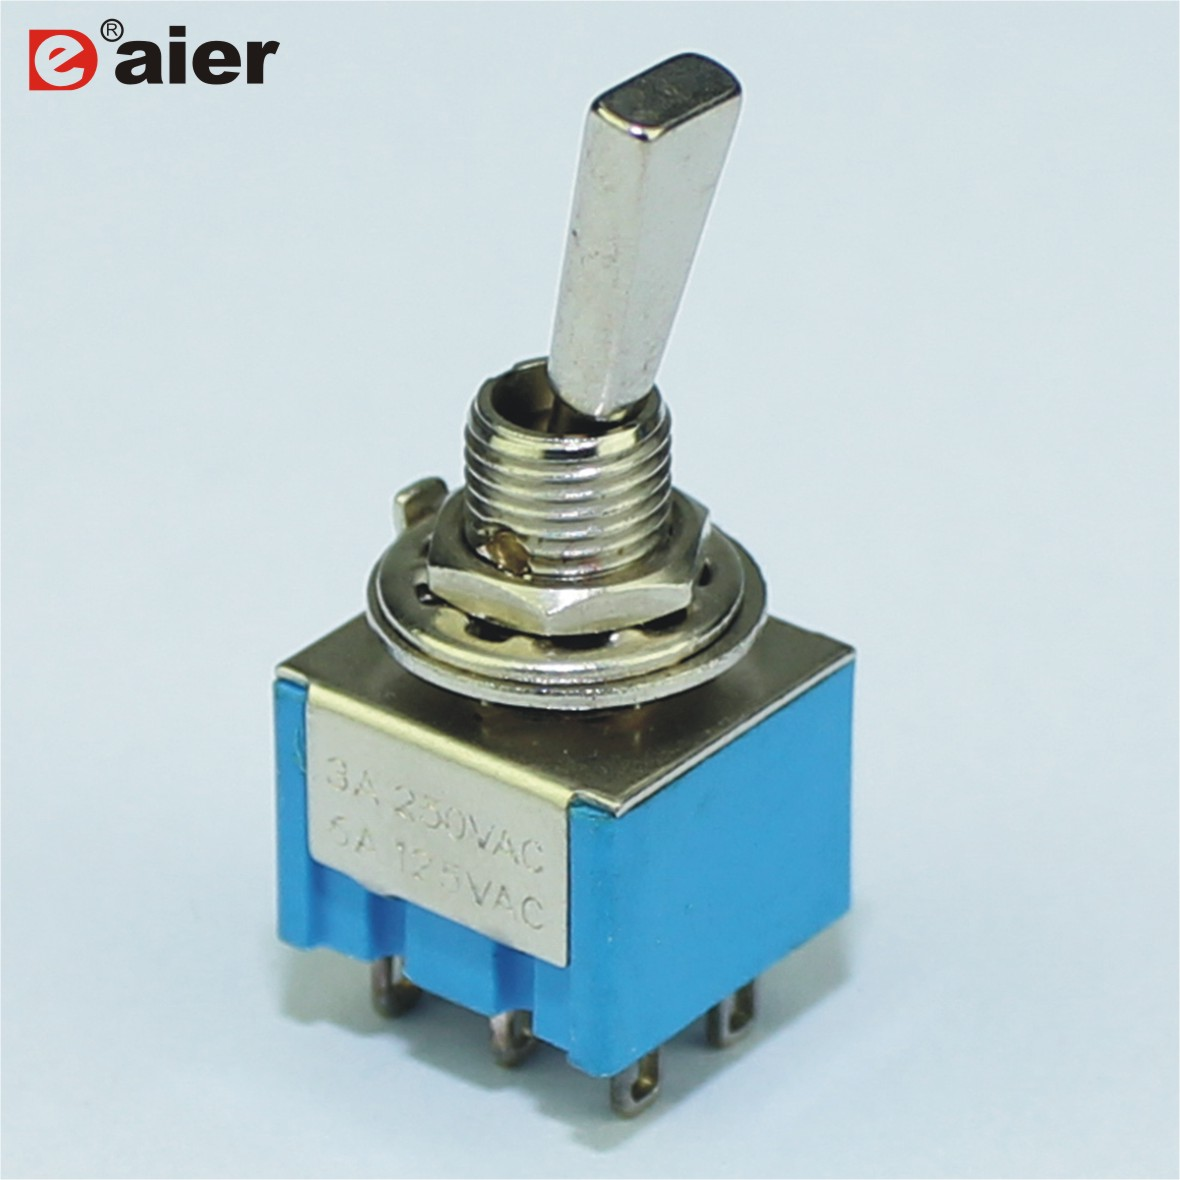 100PCS Miniature Toggle Switch 6A 125VAC 3A 250VAC ON OFF ON Switches 6 Pins DPDT Solder